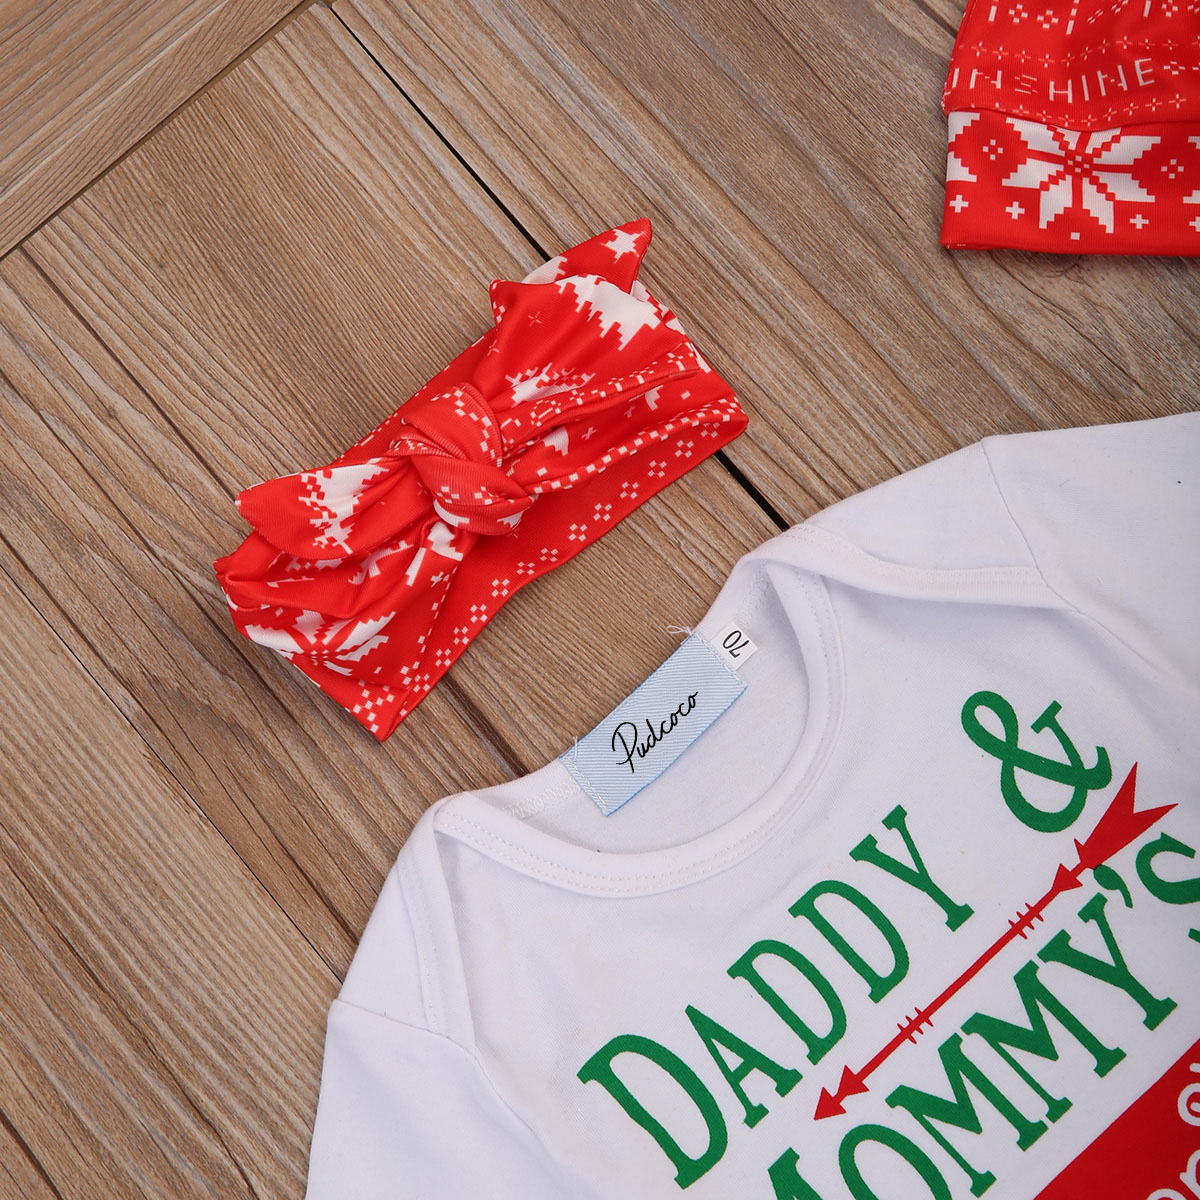 5464d7039 Pudcoco Newborn Baby Girl Boy Infant Xmas Clothes Gift Romper+Christmas  Long Pants Outfit Set 0 18M-in Clothing Sets from Mother & Kids on  Aliexpress.com ...